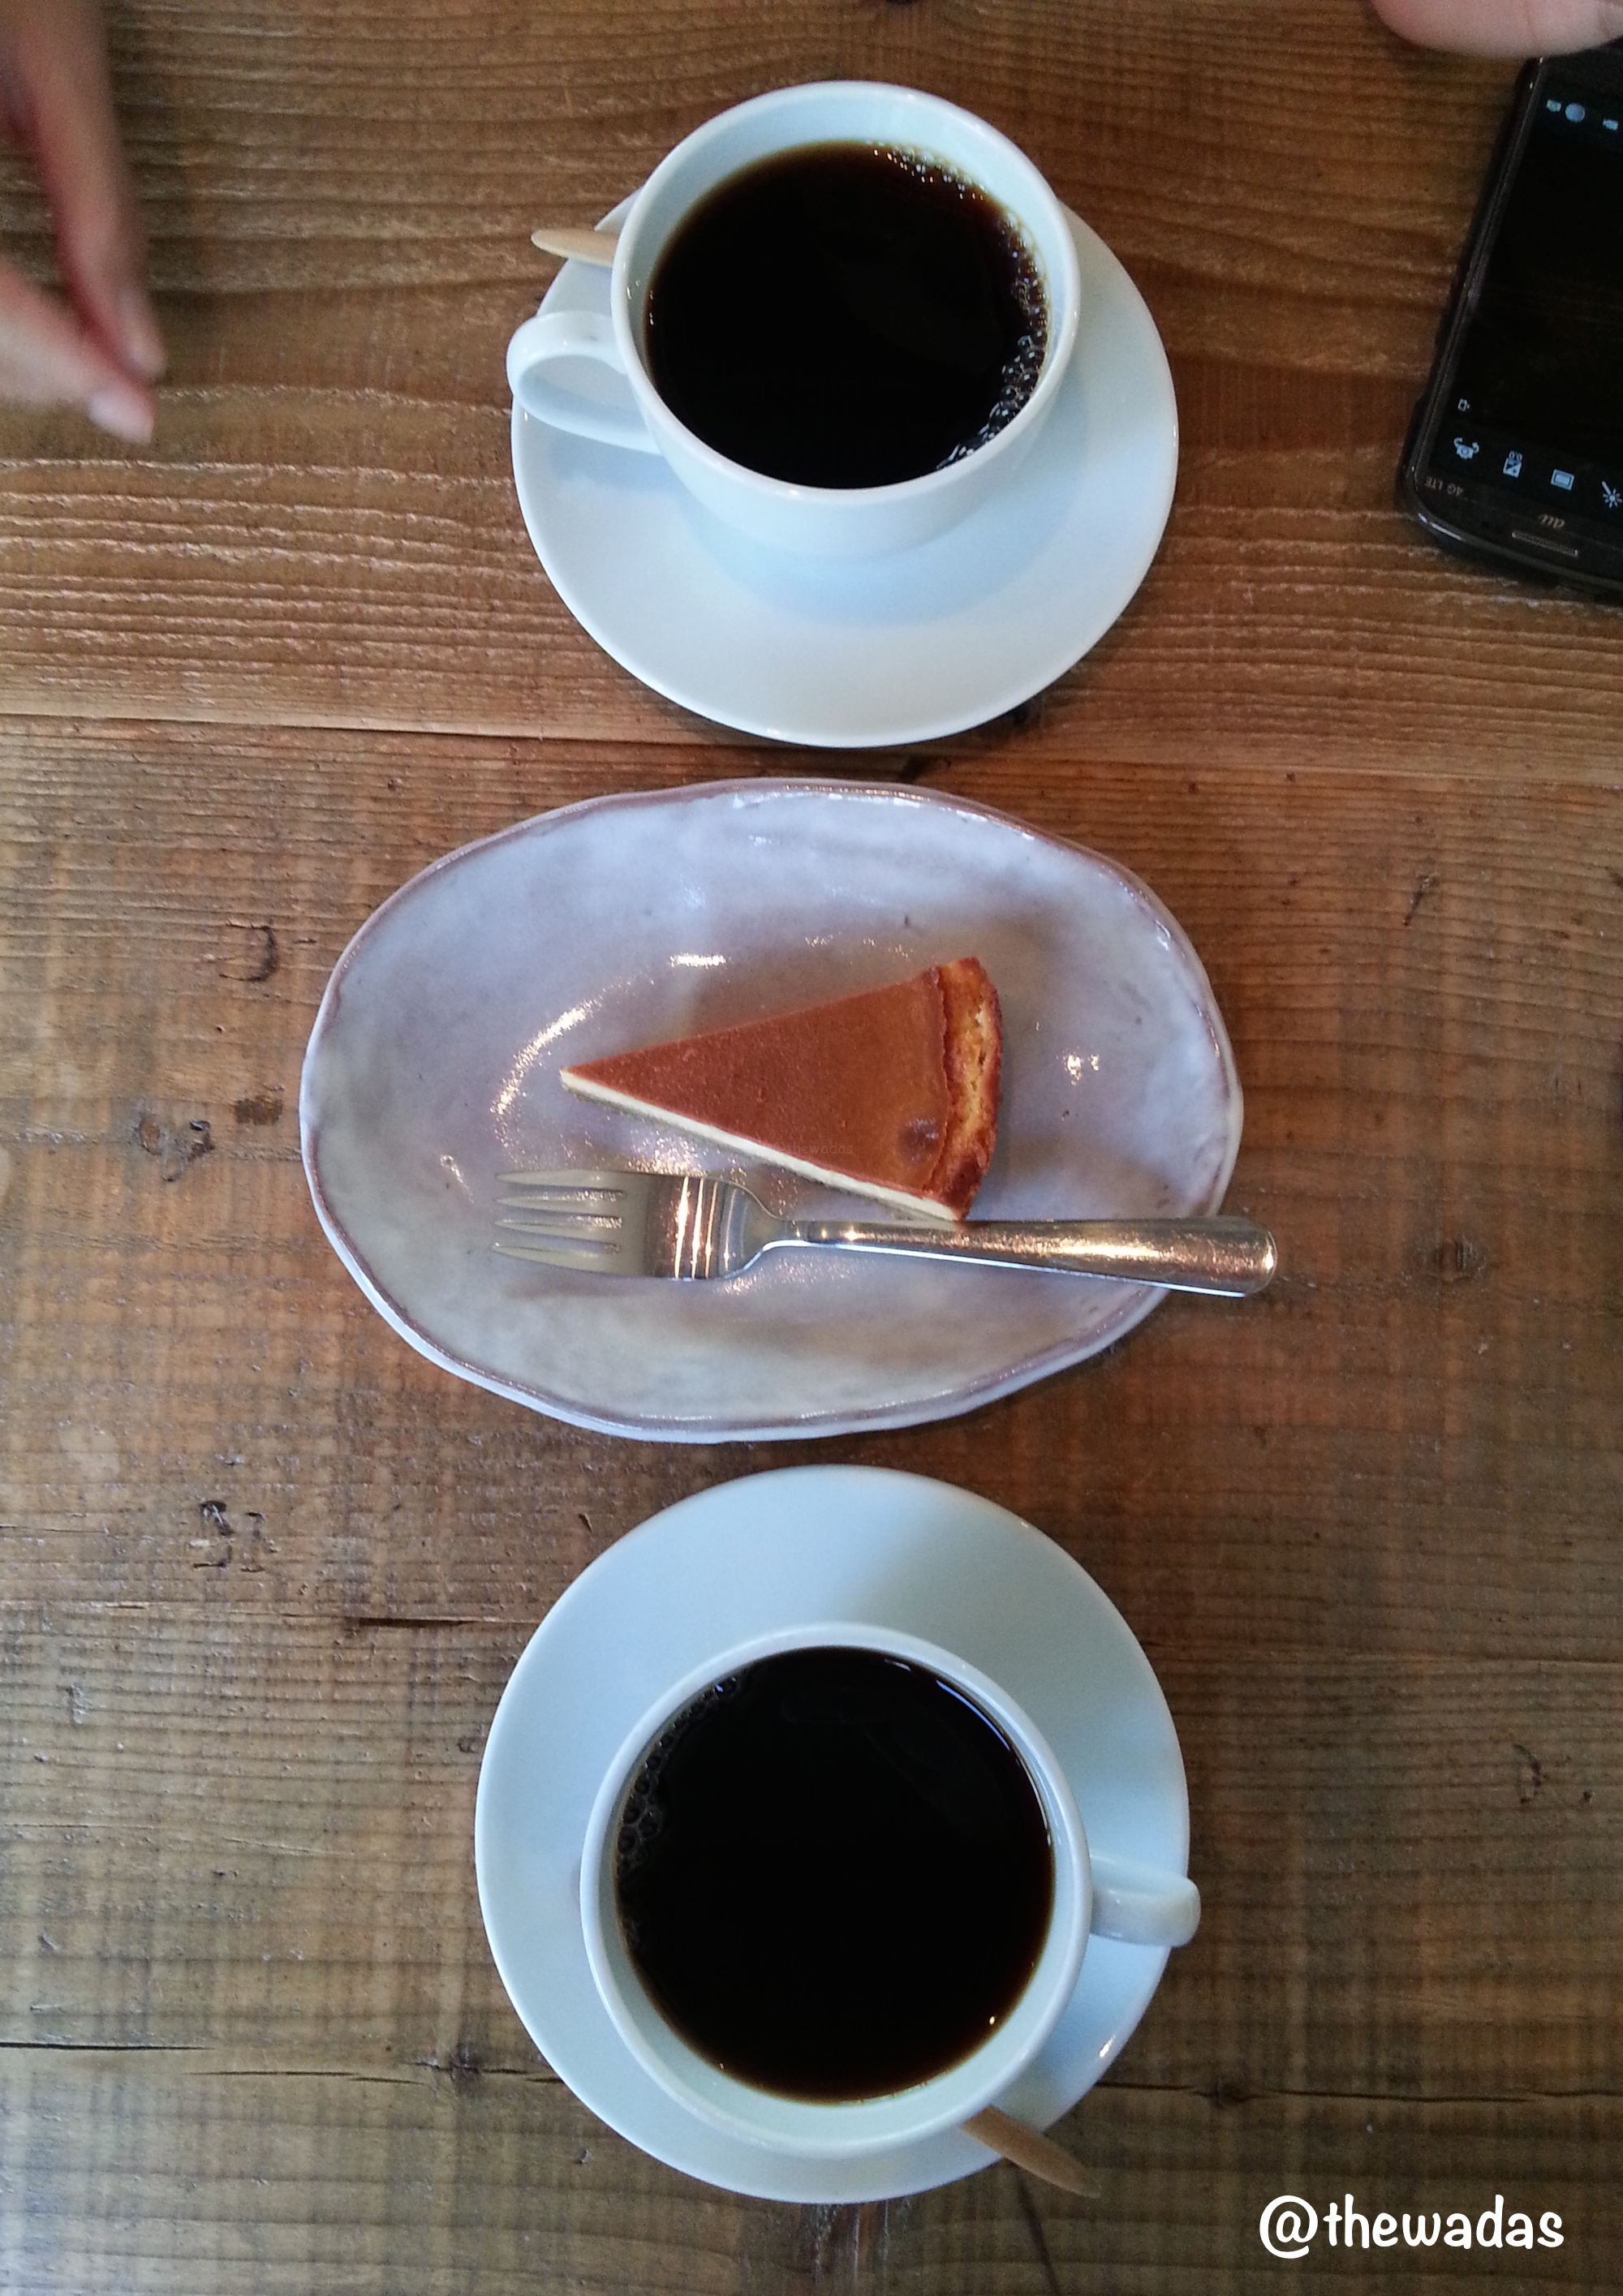 Tsuji Coffee: Cafe in Kasaoka City, coffee and baked cheesecake